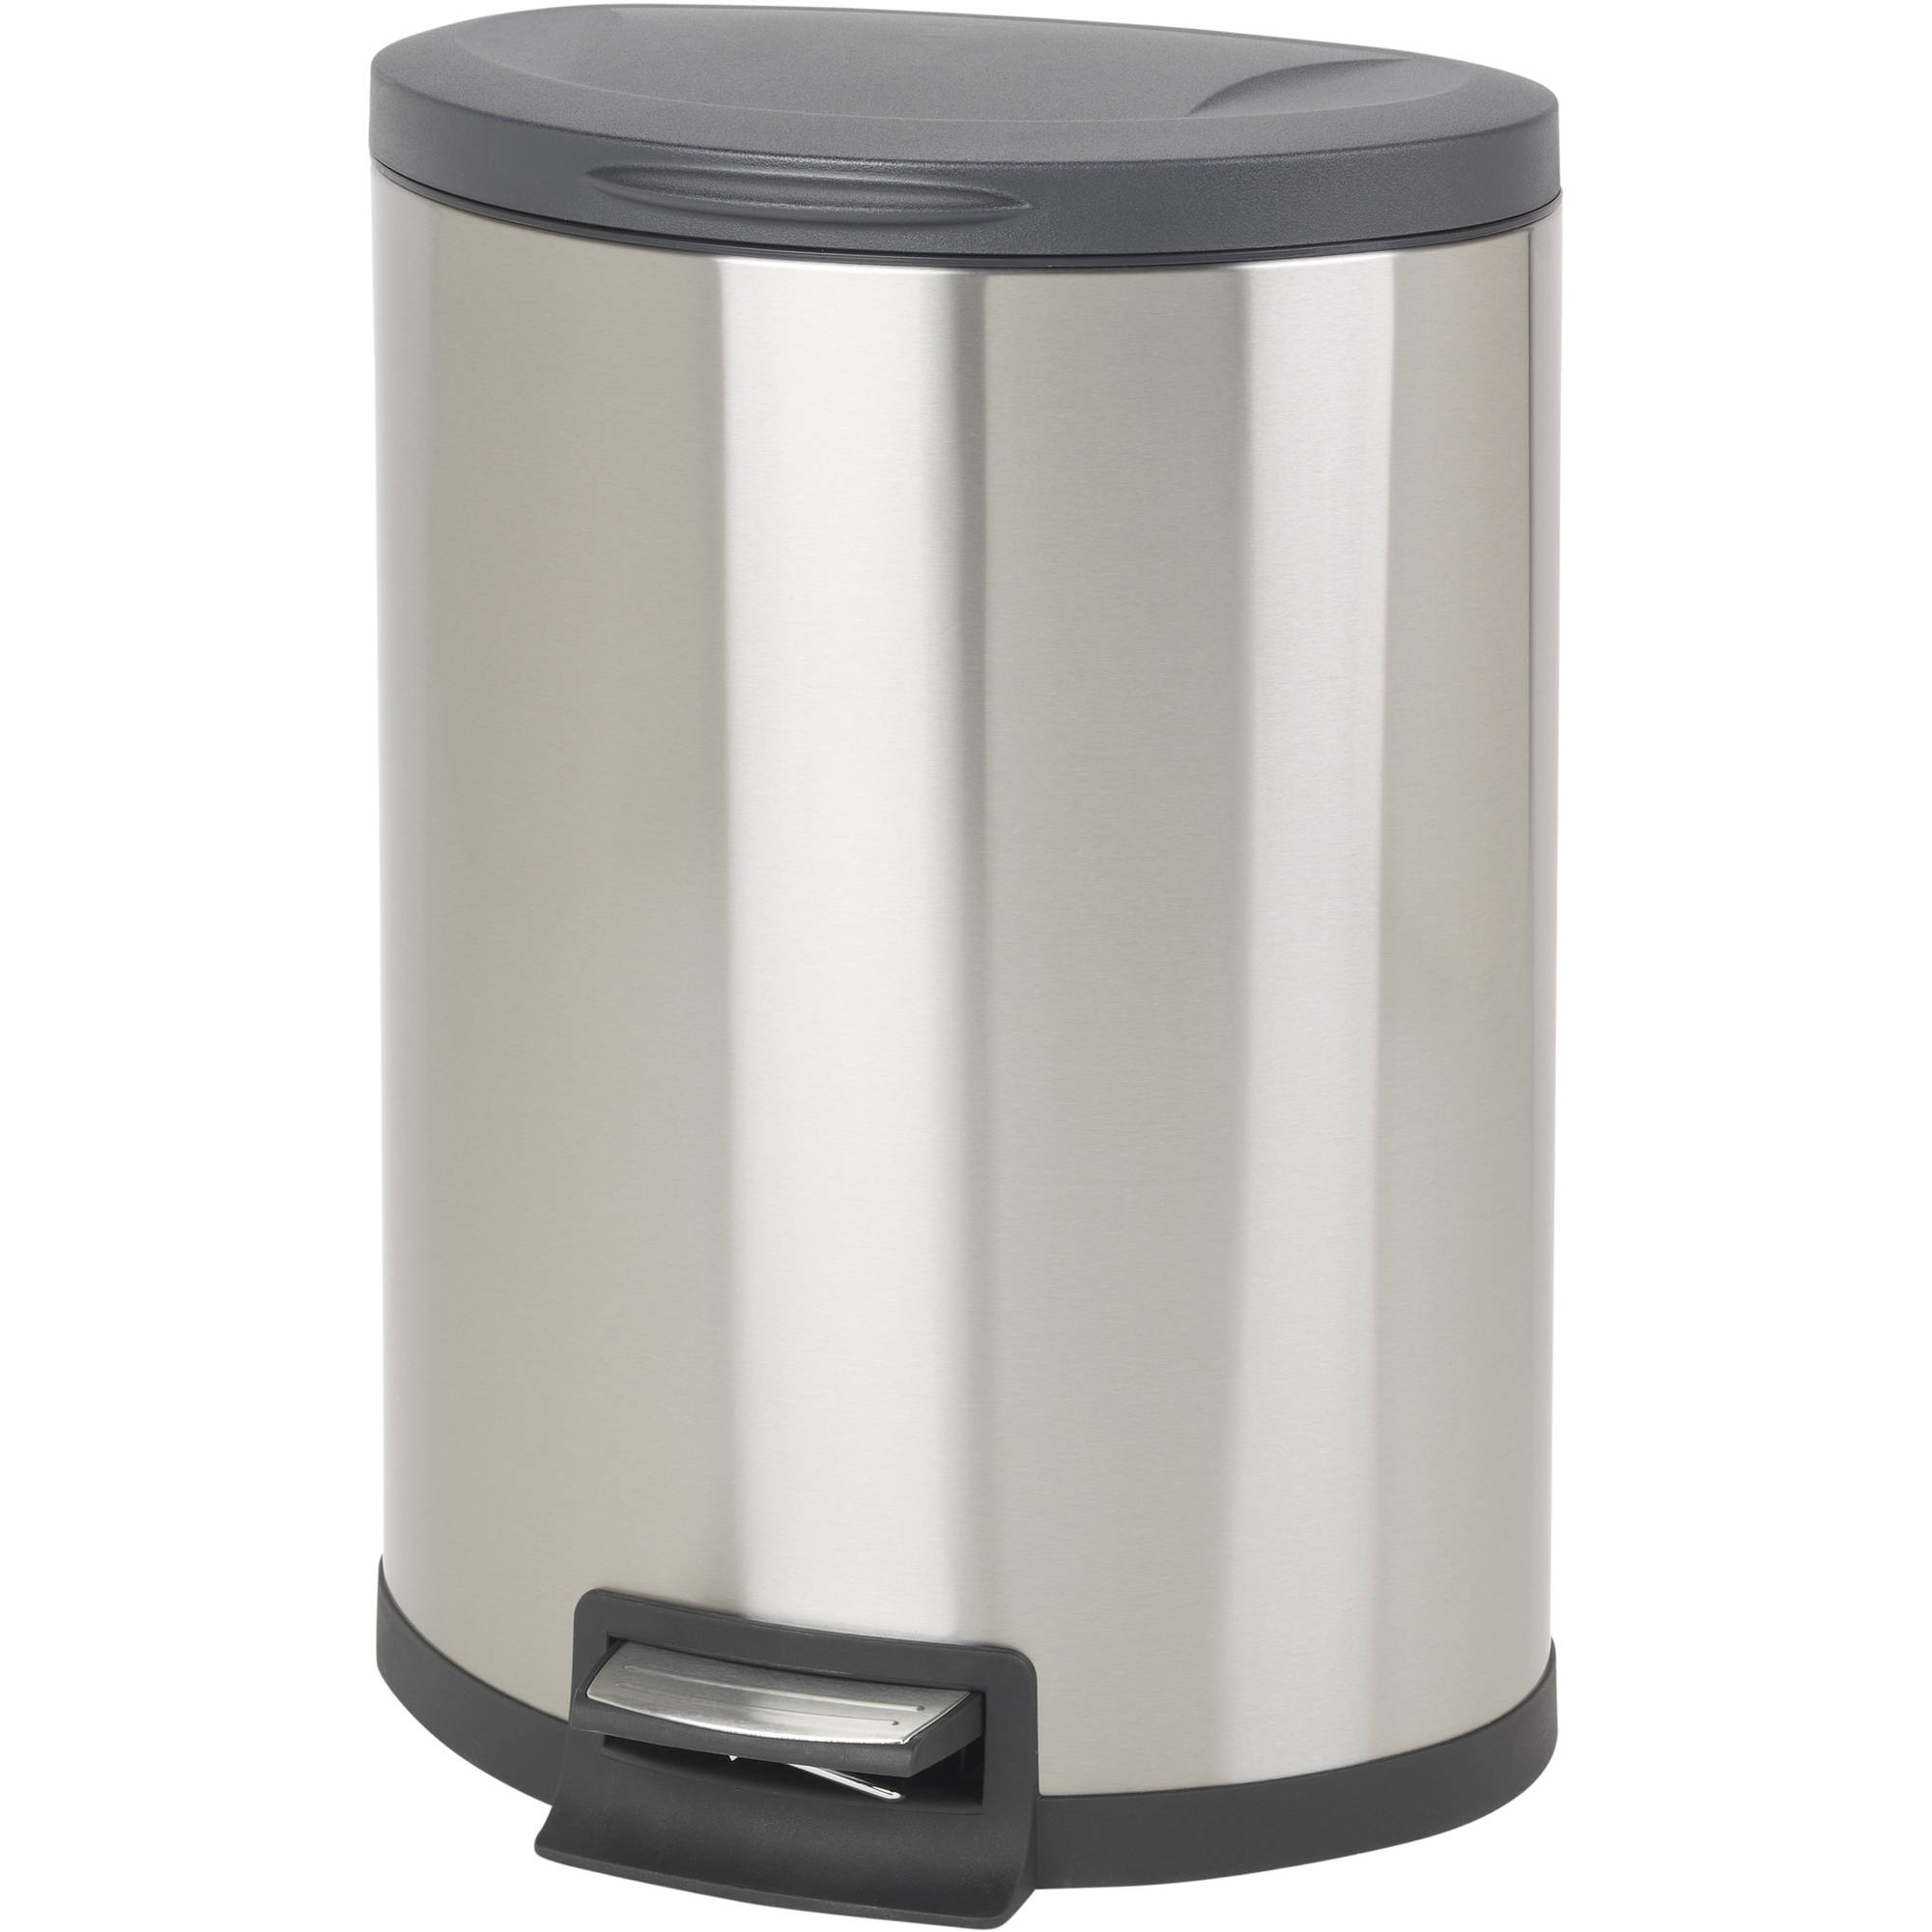 Nine Stars DZT 42 1 Touchless Stainless Steel 11.1 Gallon Trash Can    Walmart.com